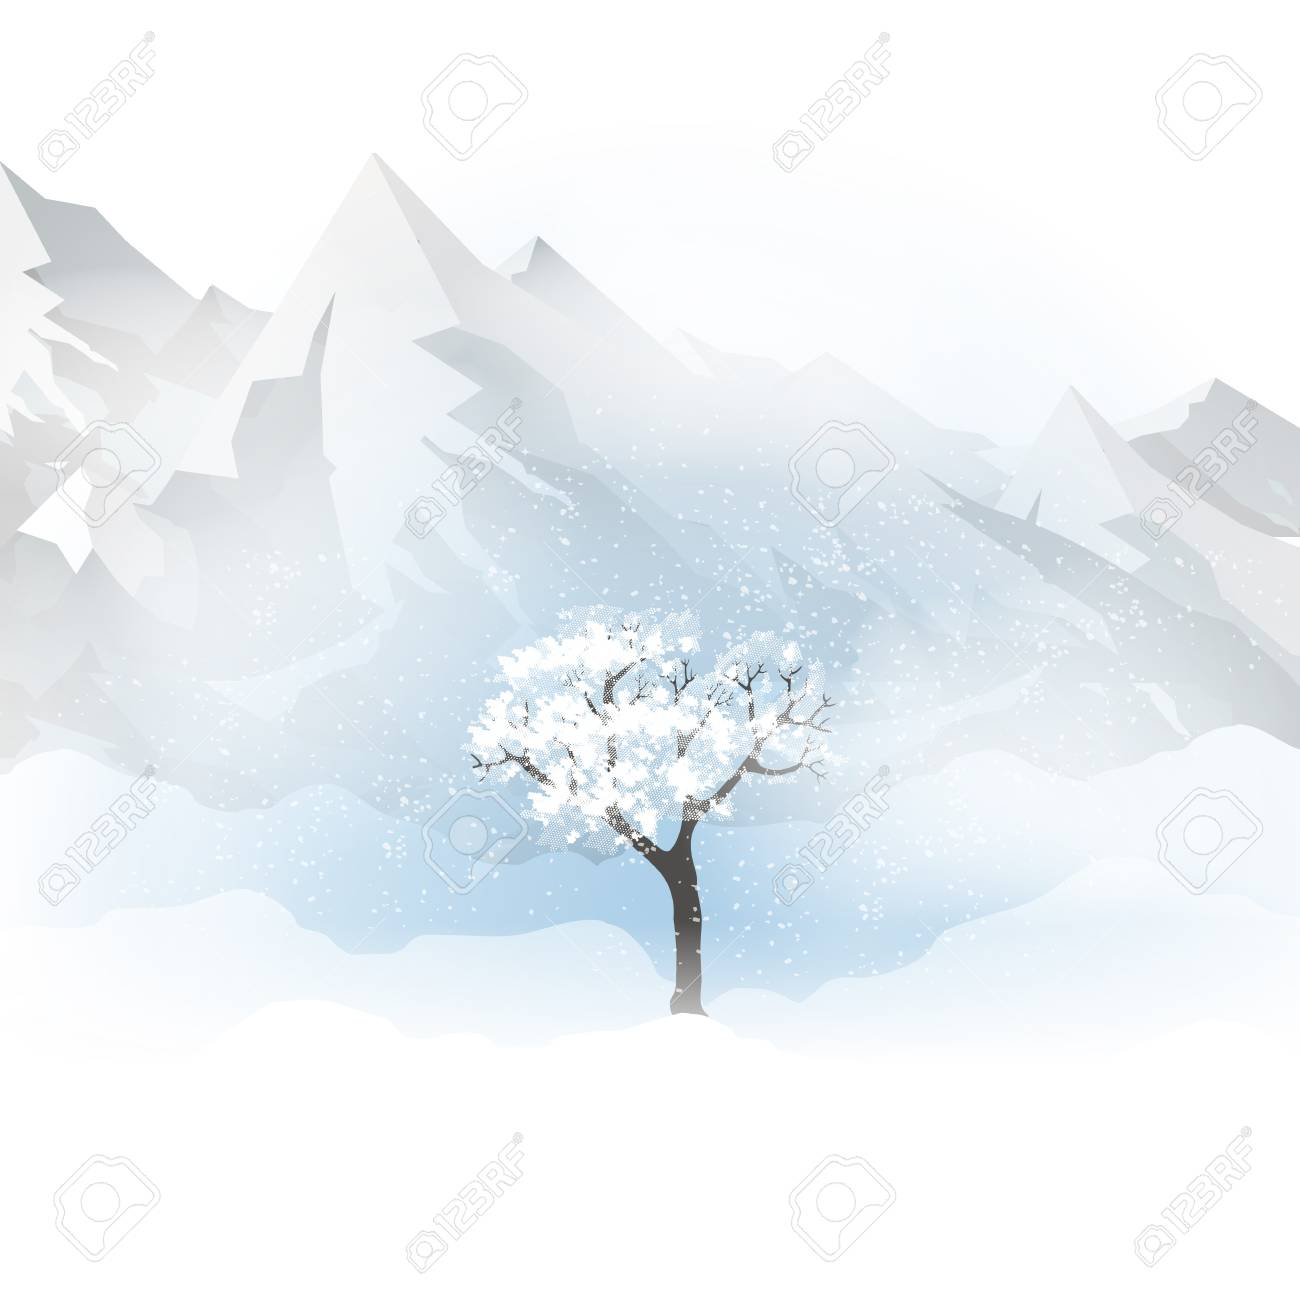 Winter with mountains, a tree and falling snow vector illustration. - 98084806